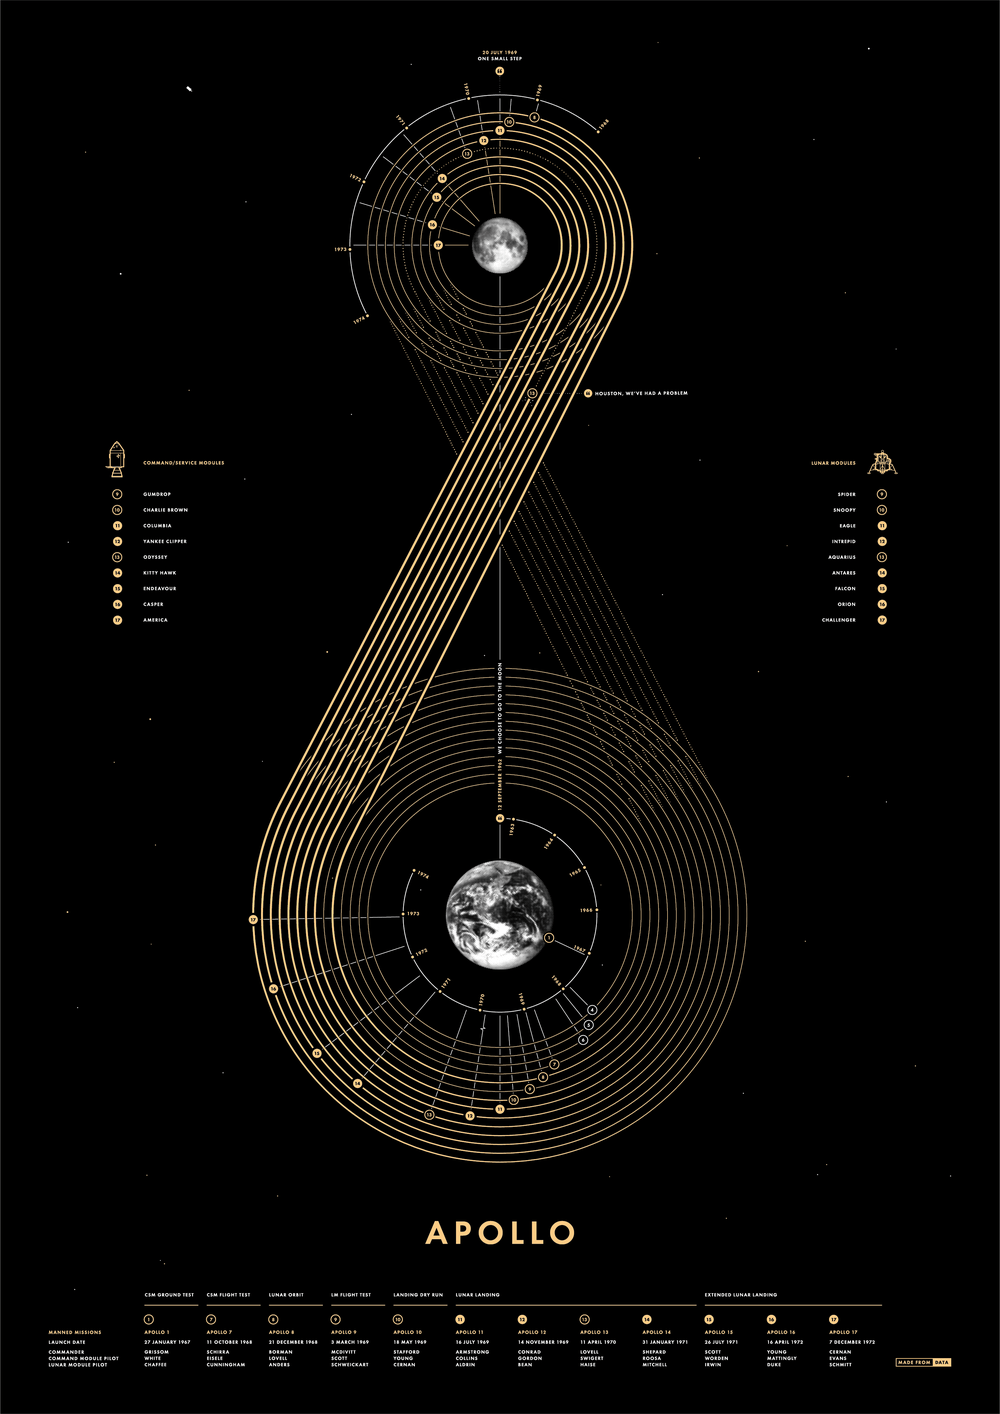 Apollo Black - Apollo Space Program Information Design - Paul Button